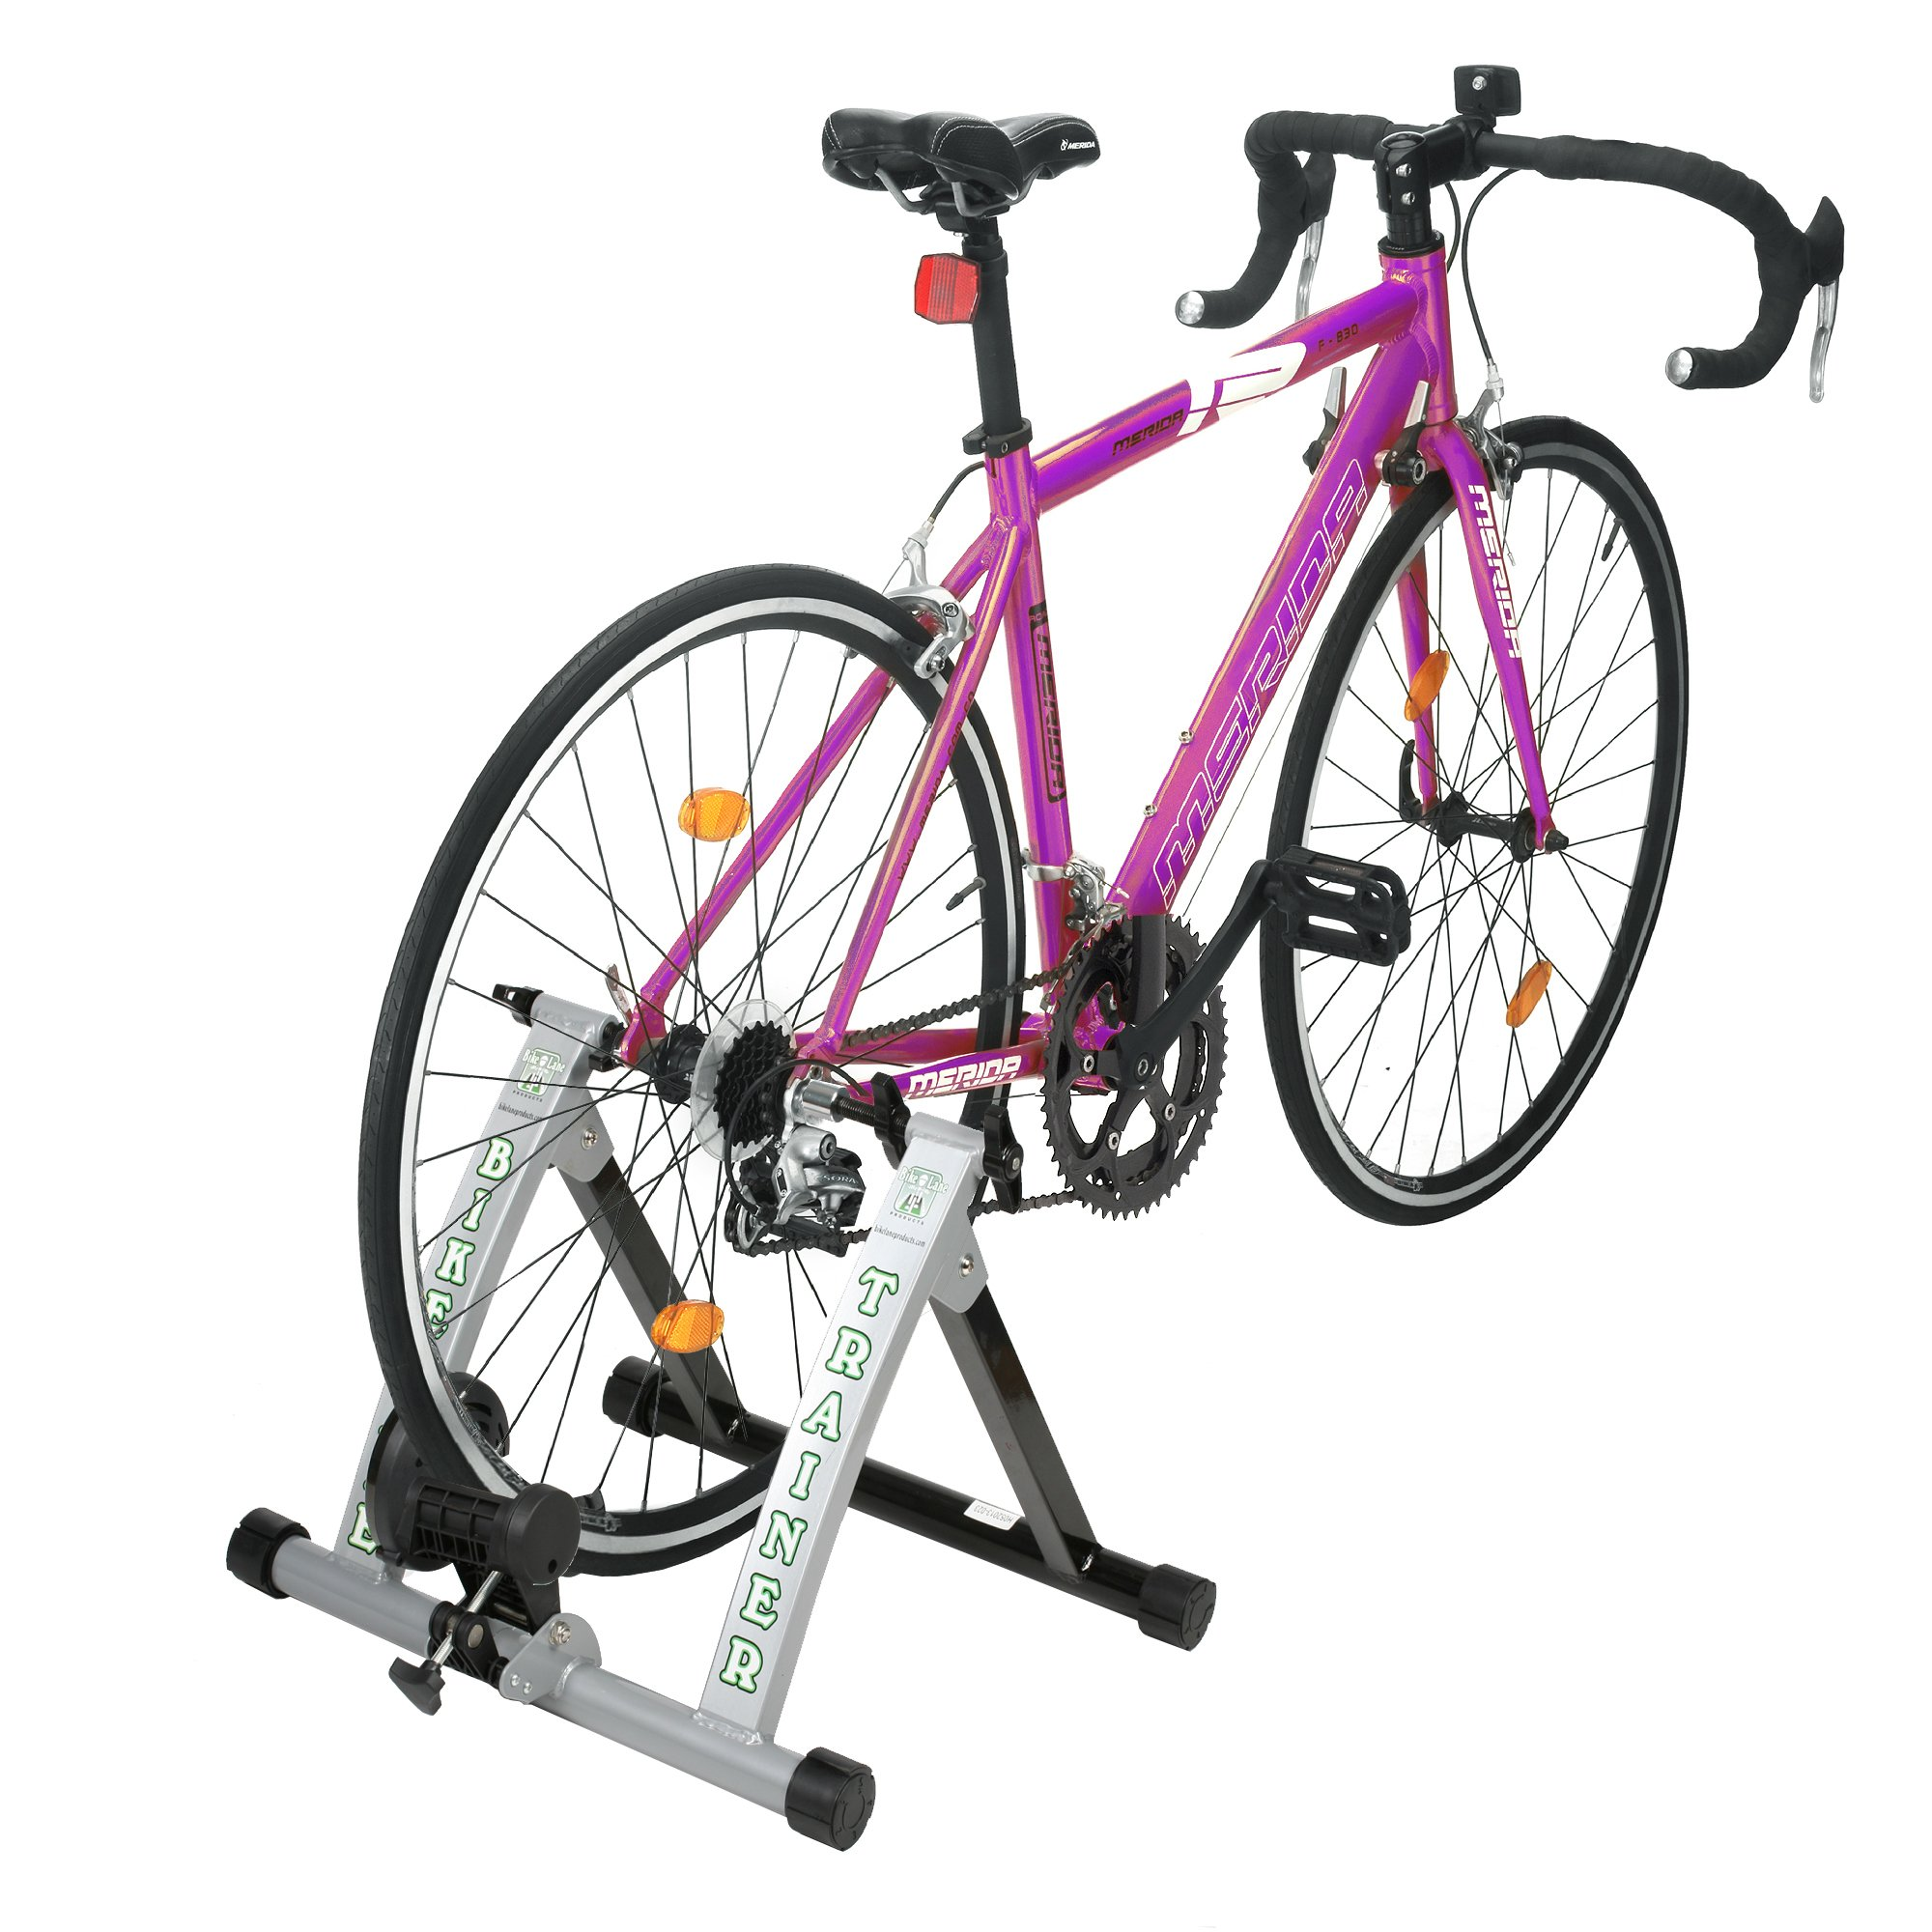 Bike Lane Trainer Bicycle Indoor Trainer Exercise Machine Ride All Year Around With 850 Gram Machined Steel Flywheel for the Most Natural Pedal Feel by Bike Lane (Image #1)